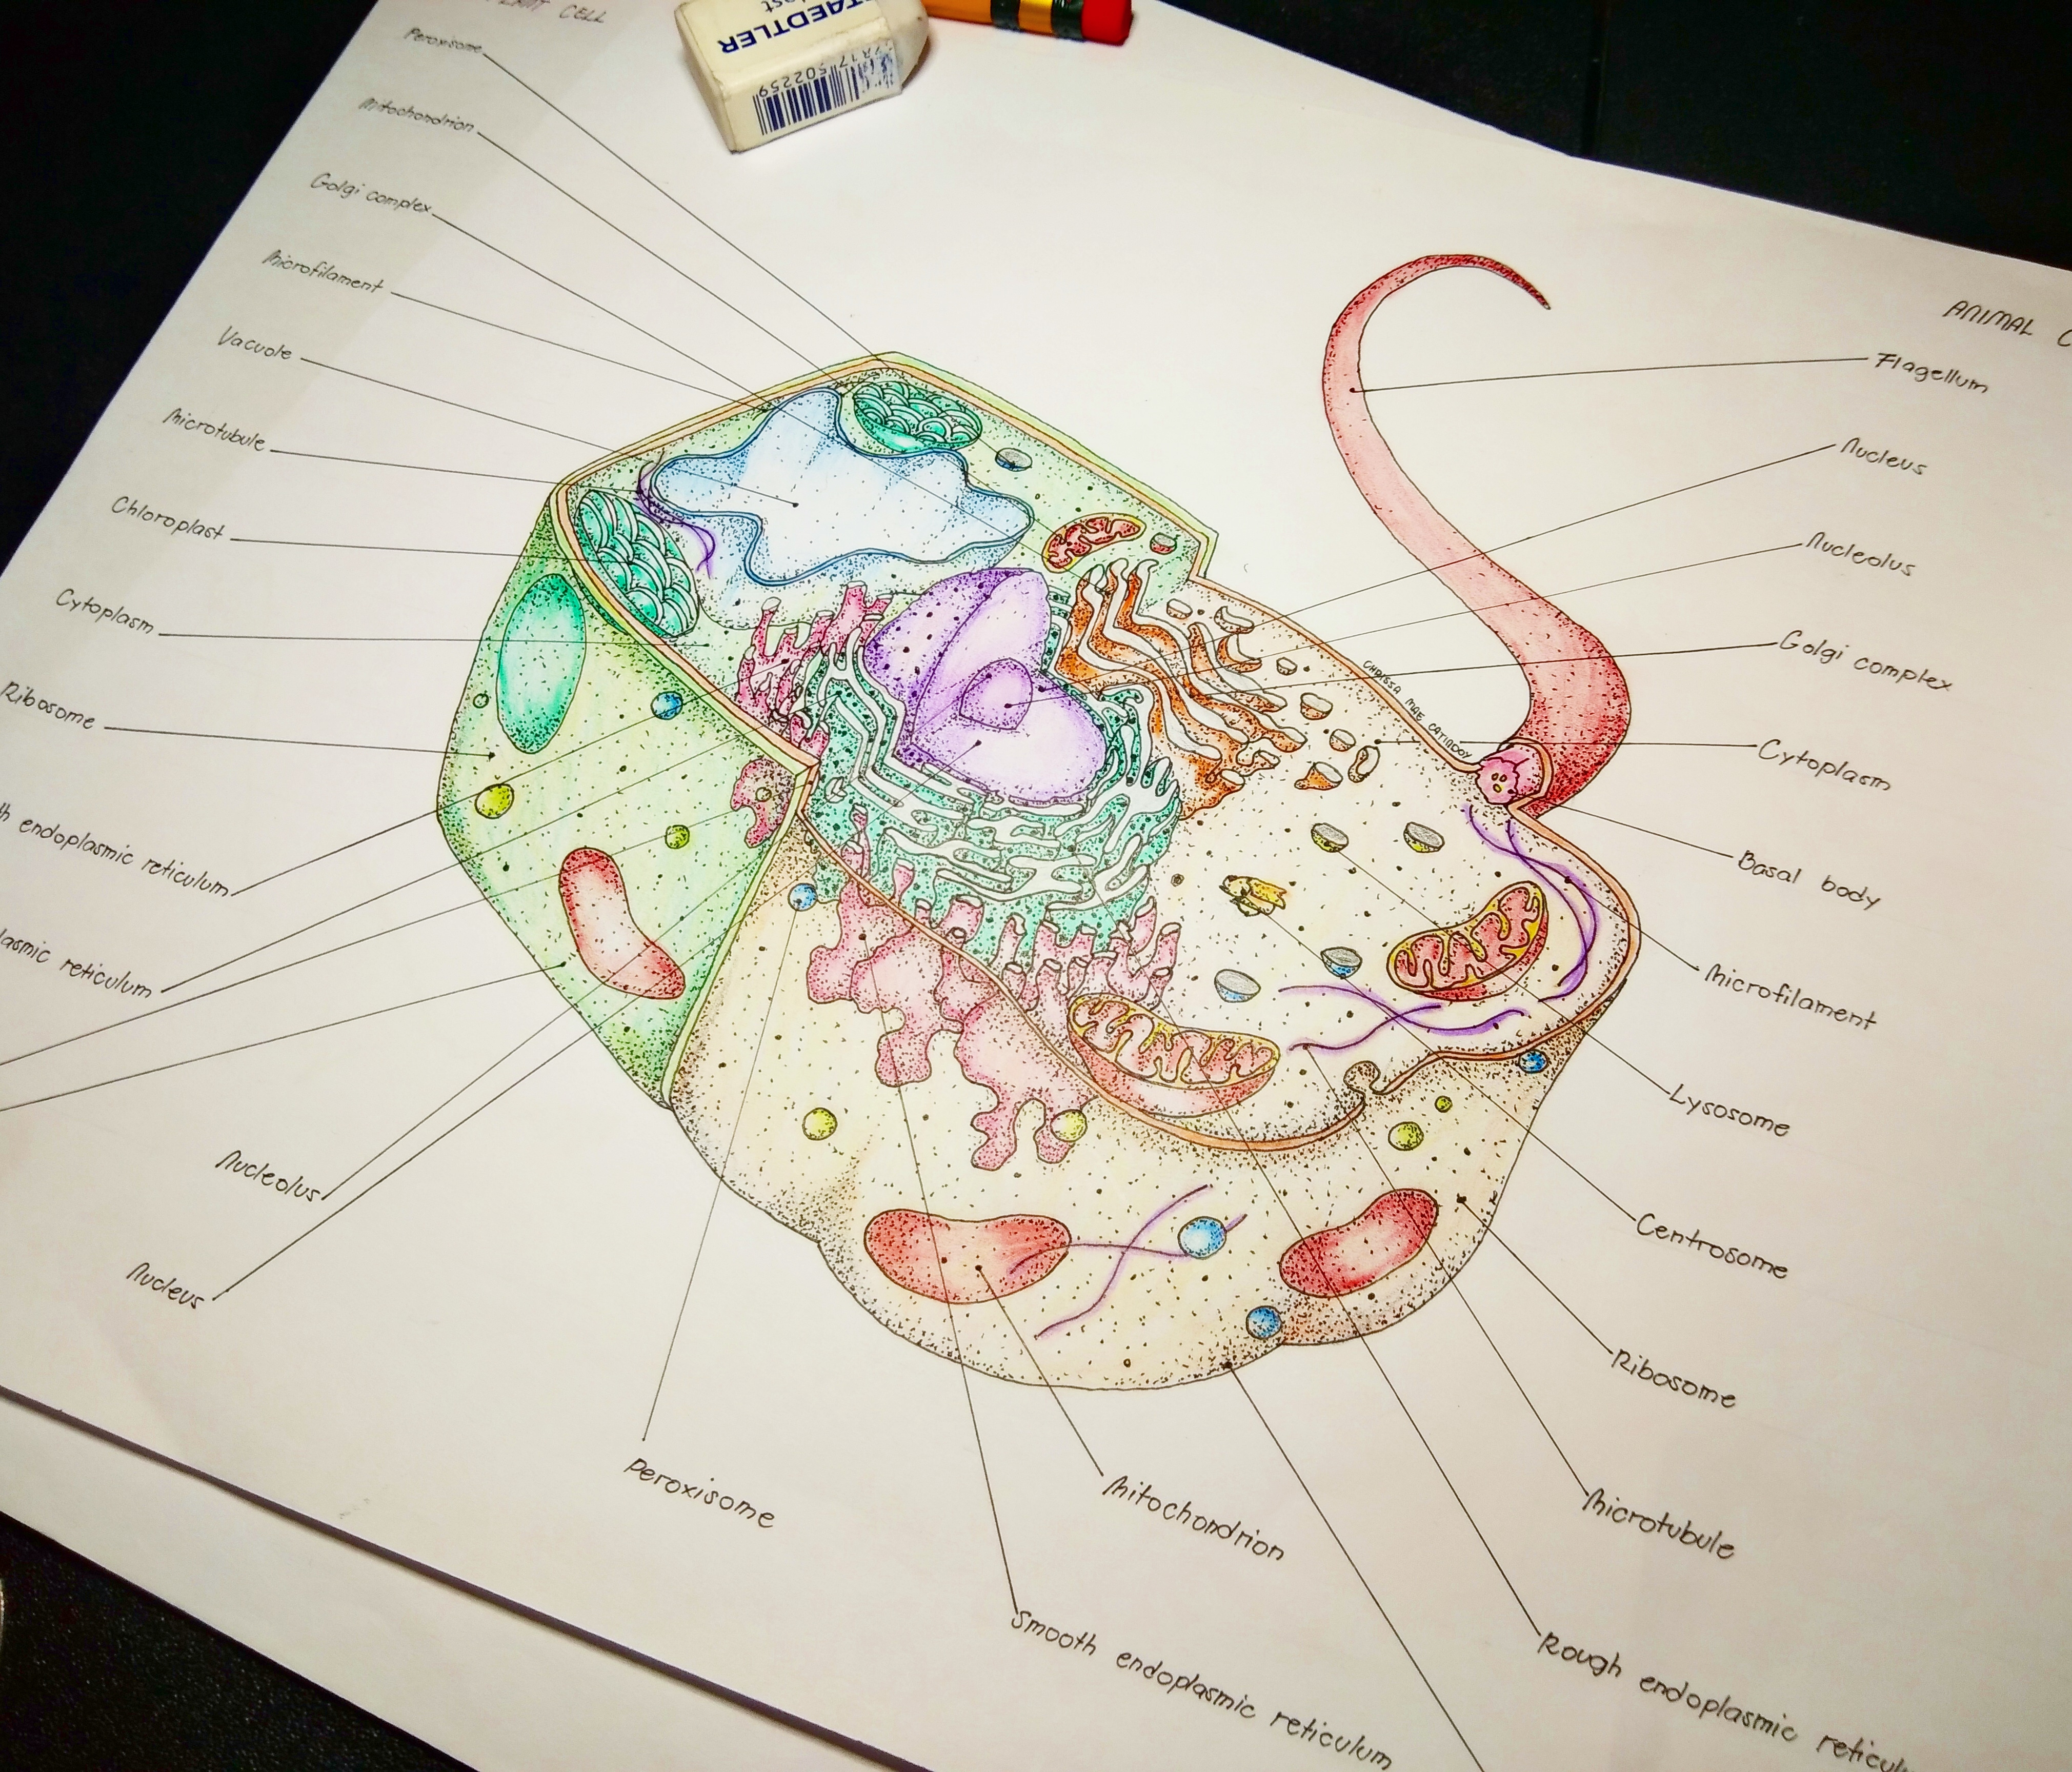 Eukaryotic Cell Half Plant Cell And Half Animal Cell